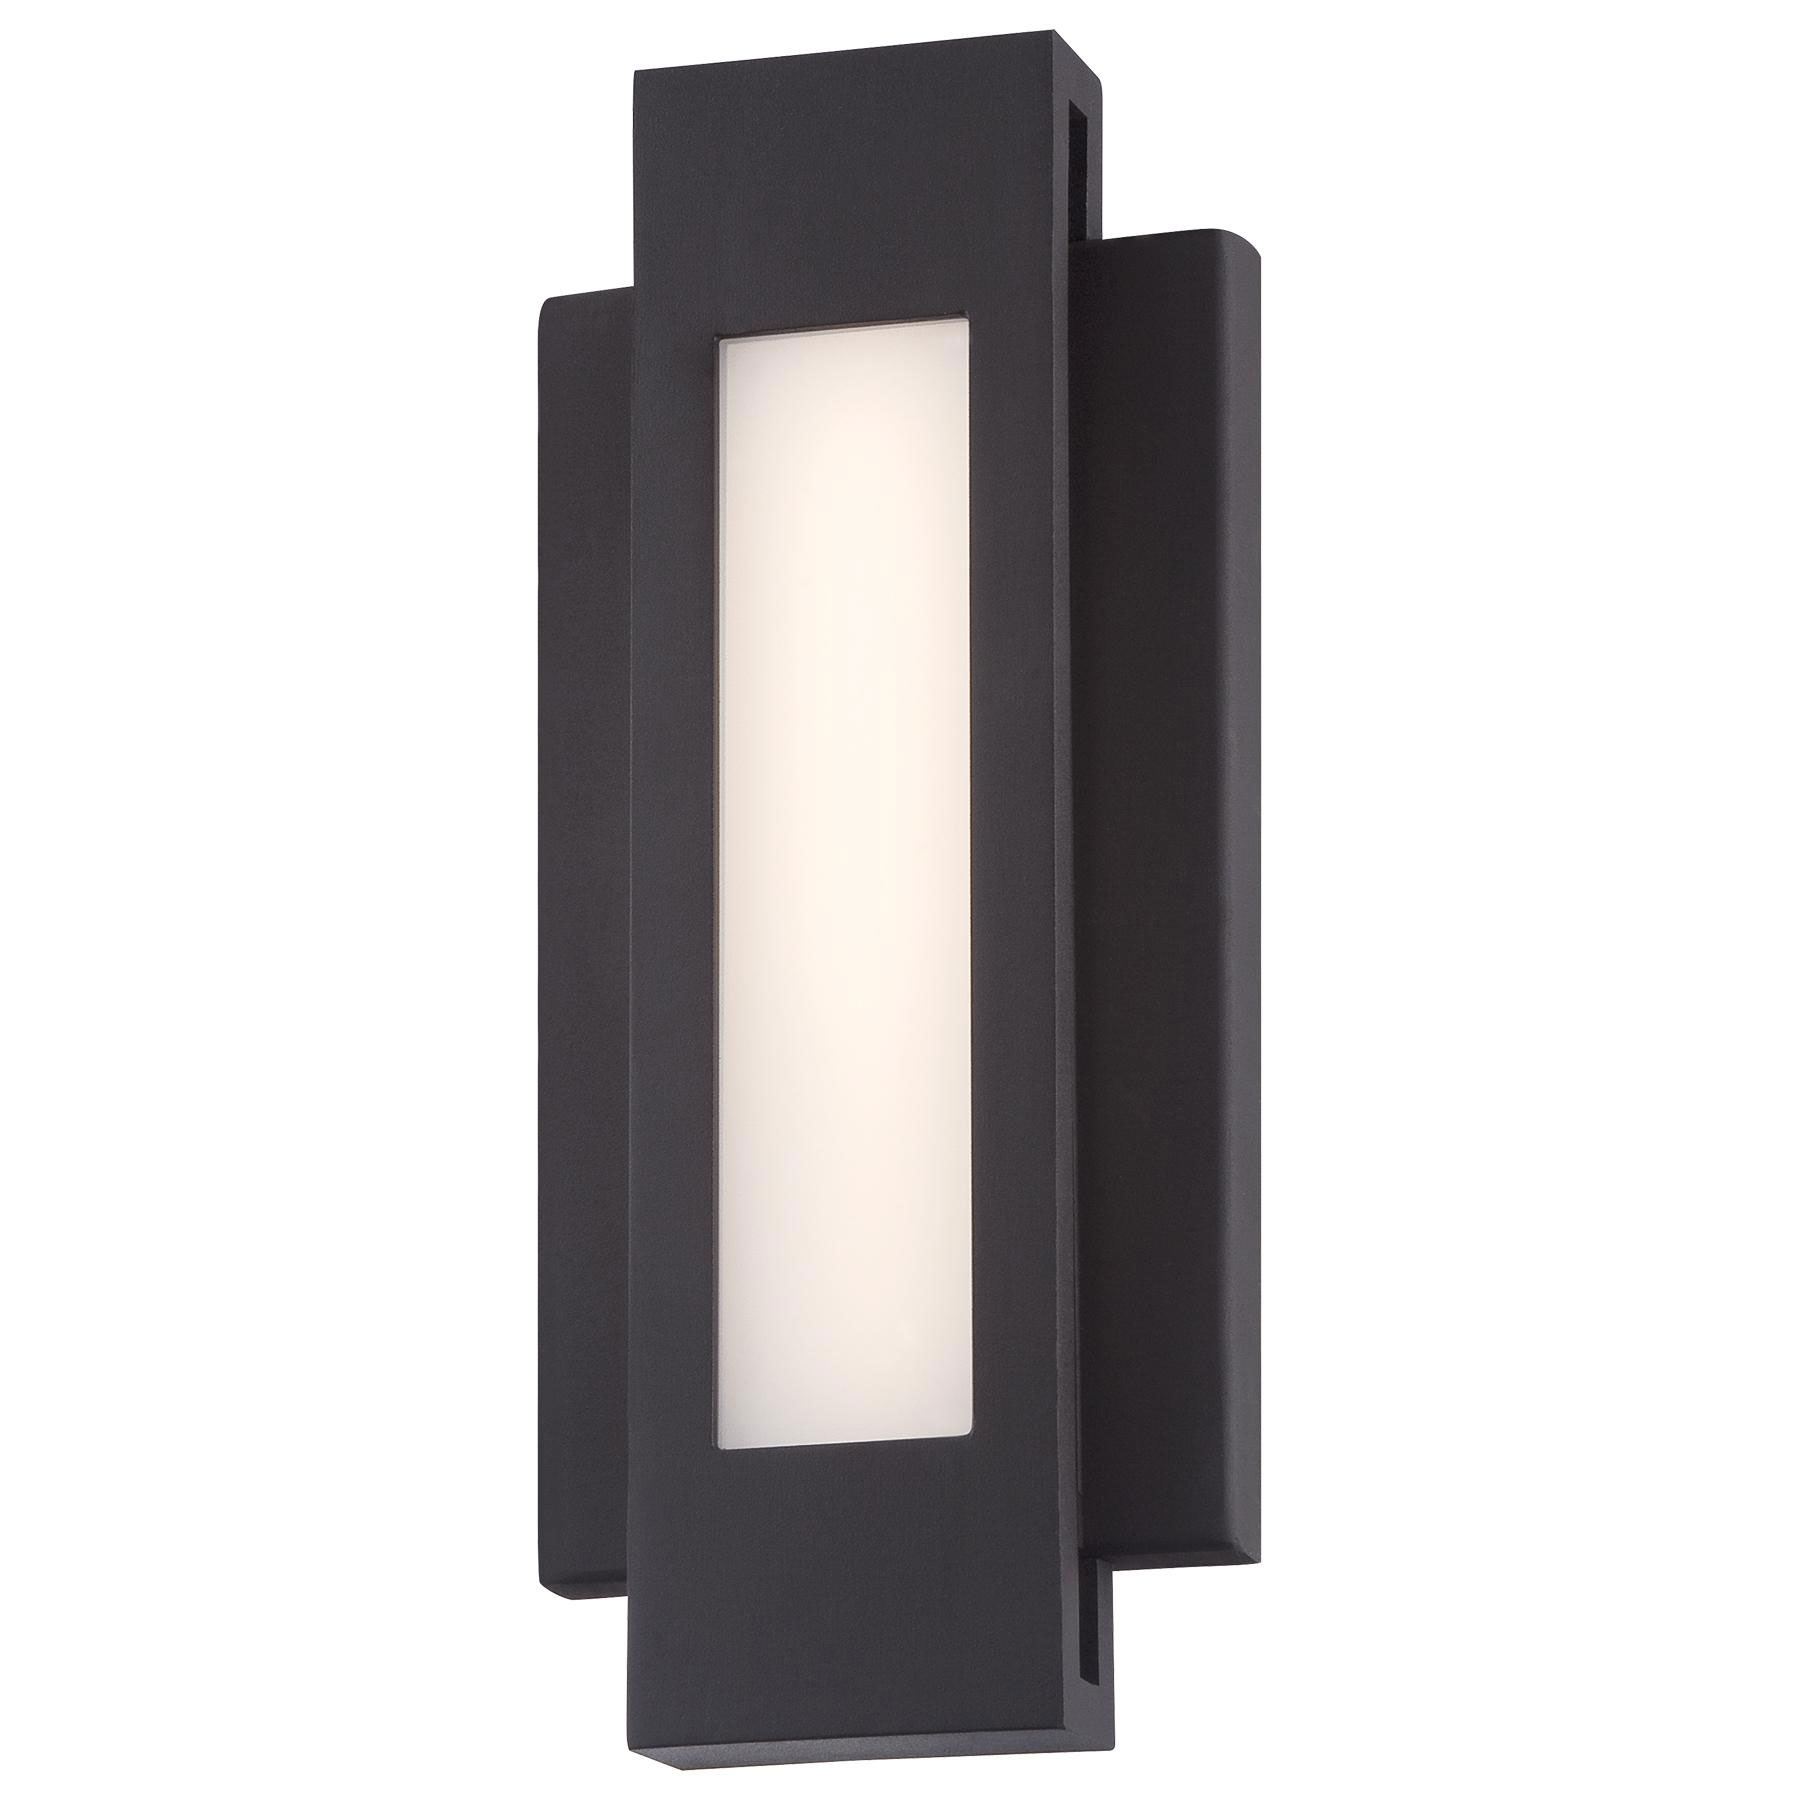 Jackyled Wall Sconces: Insert Outdoor LED Wall Sconce By George Kovacs